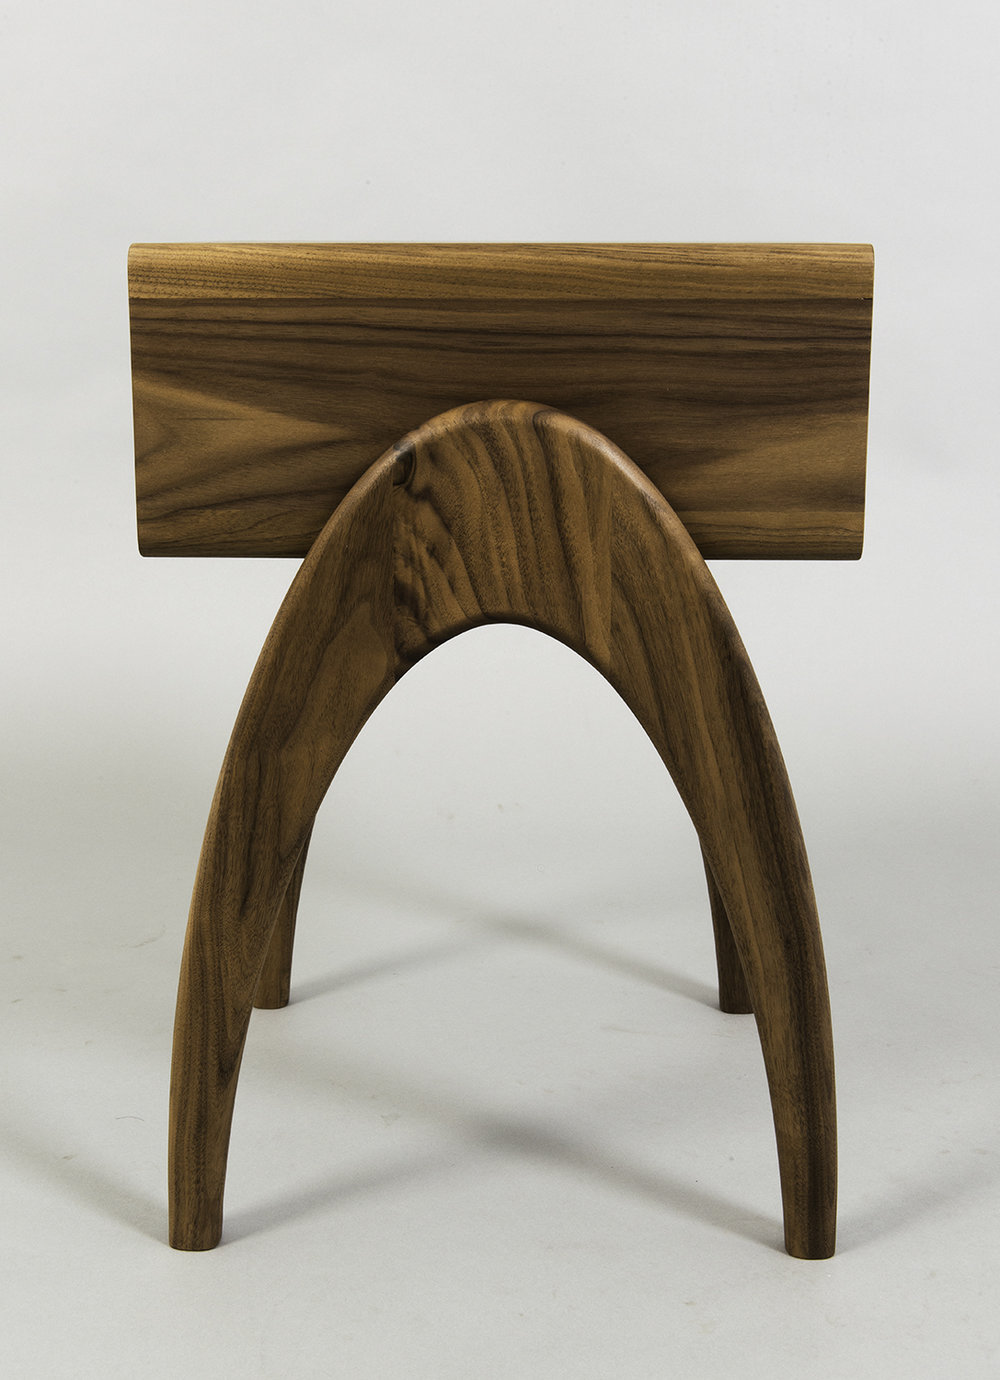 Retrospect Sidetable by Alan Flannery Furniture Design low14.jpg